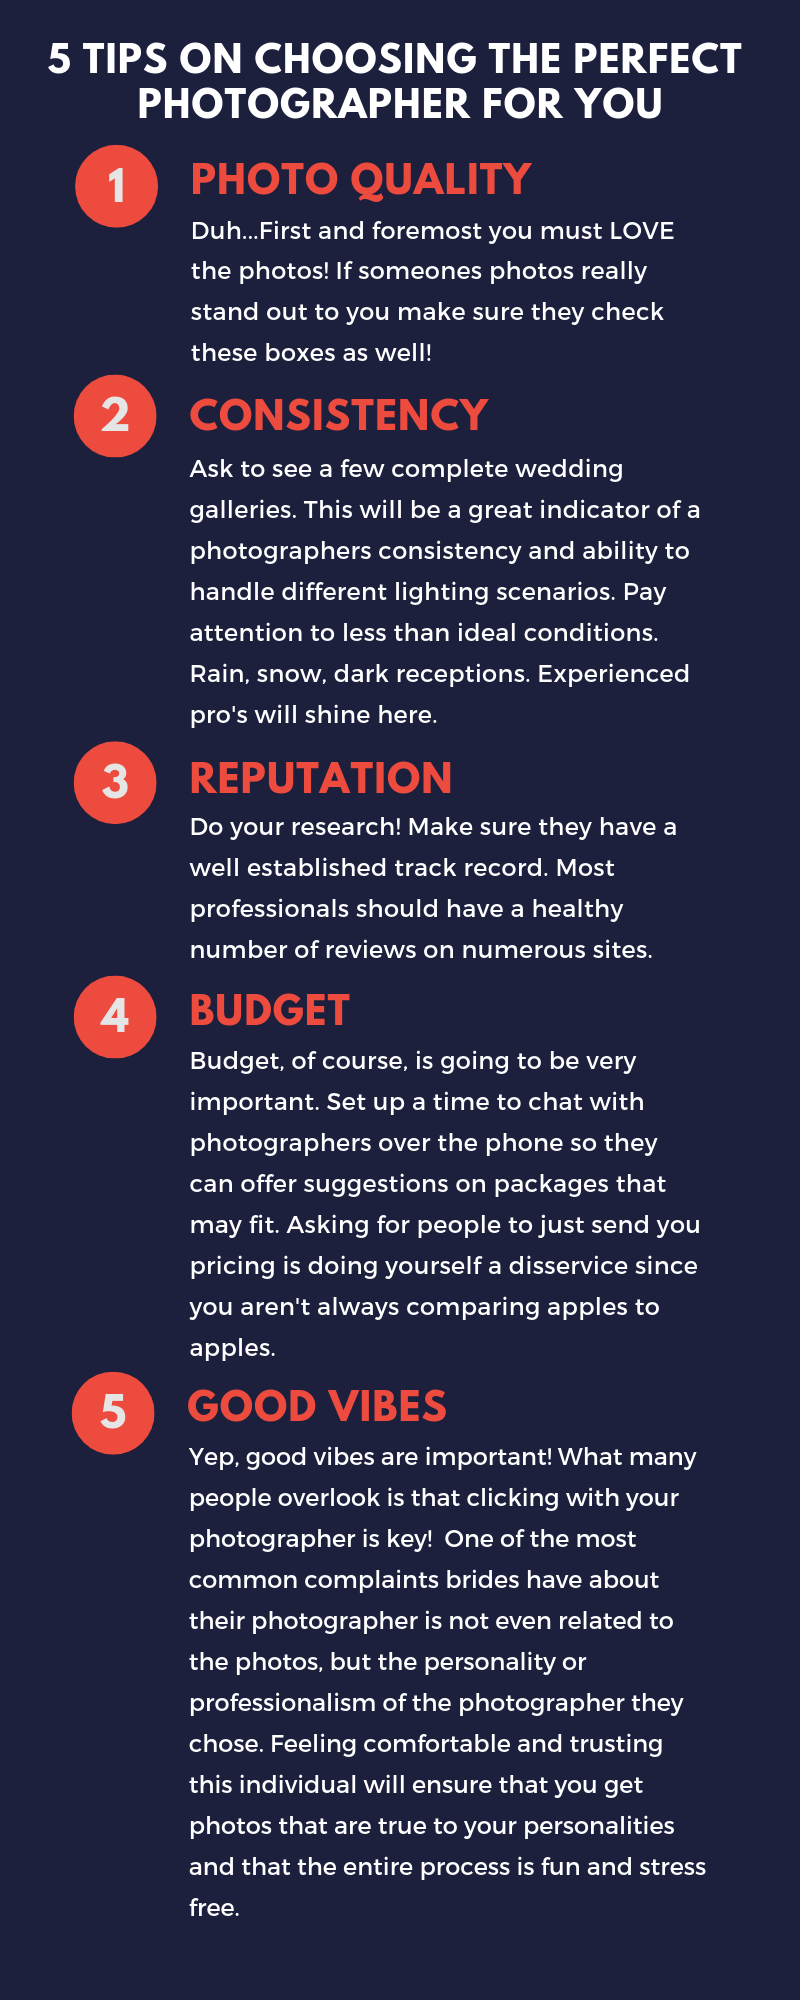 5-TIPS-ON-CHOOSING-THE-PERFECT-PHOTOGRAPHER-FOR-YOU.png